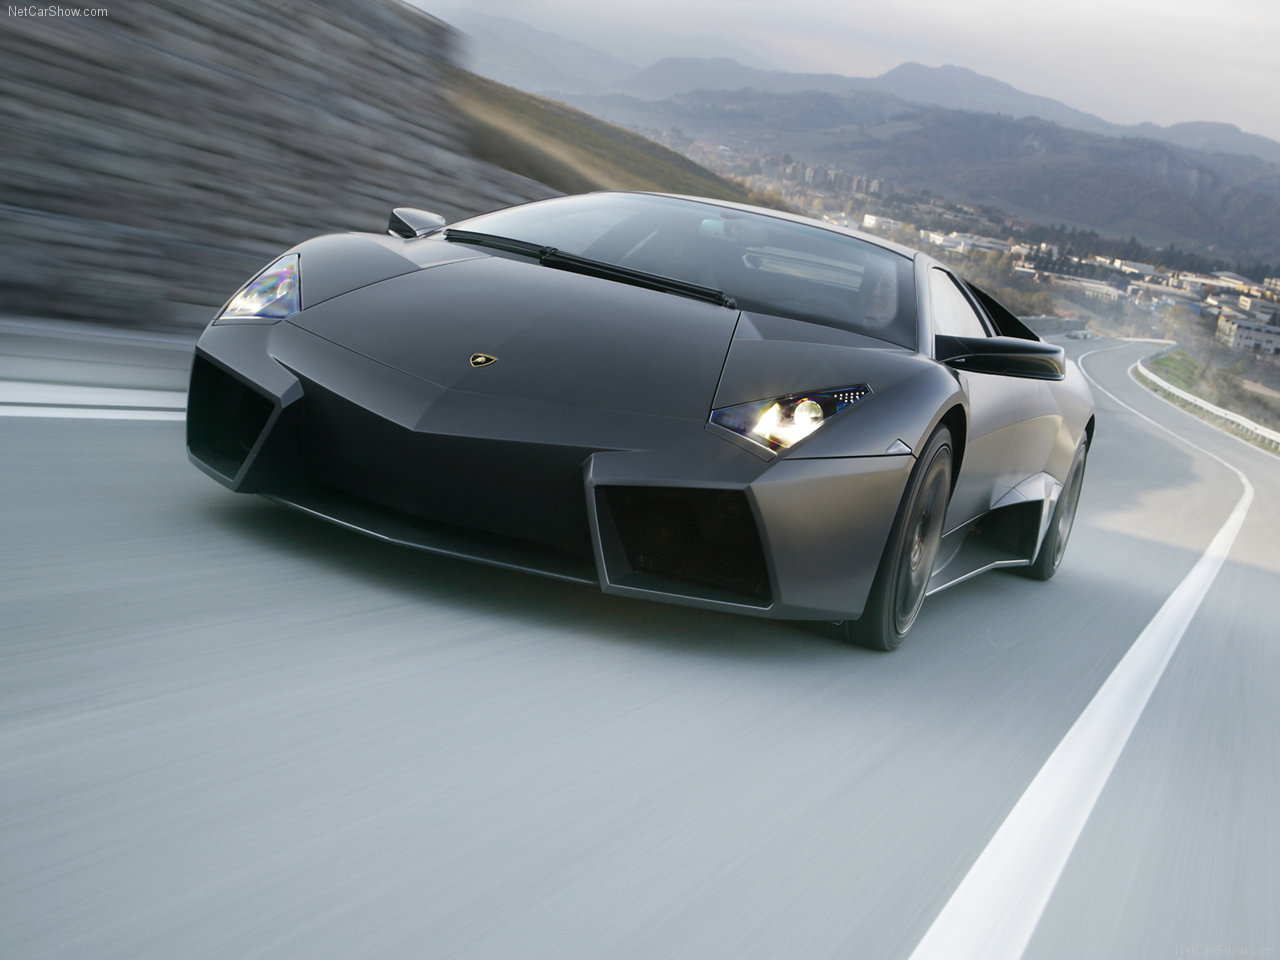 Lamborghini reventon wallpaper - the Reventon, could reach a top speed of 257km/h